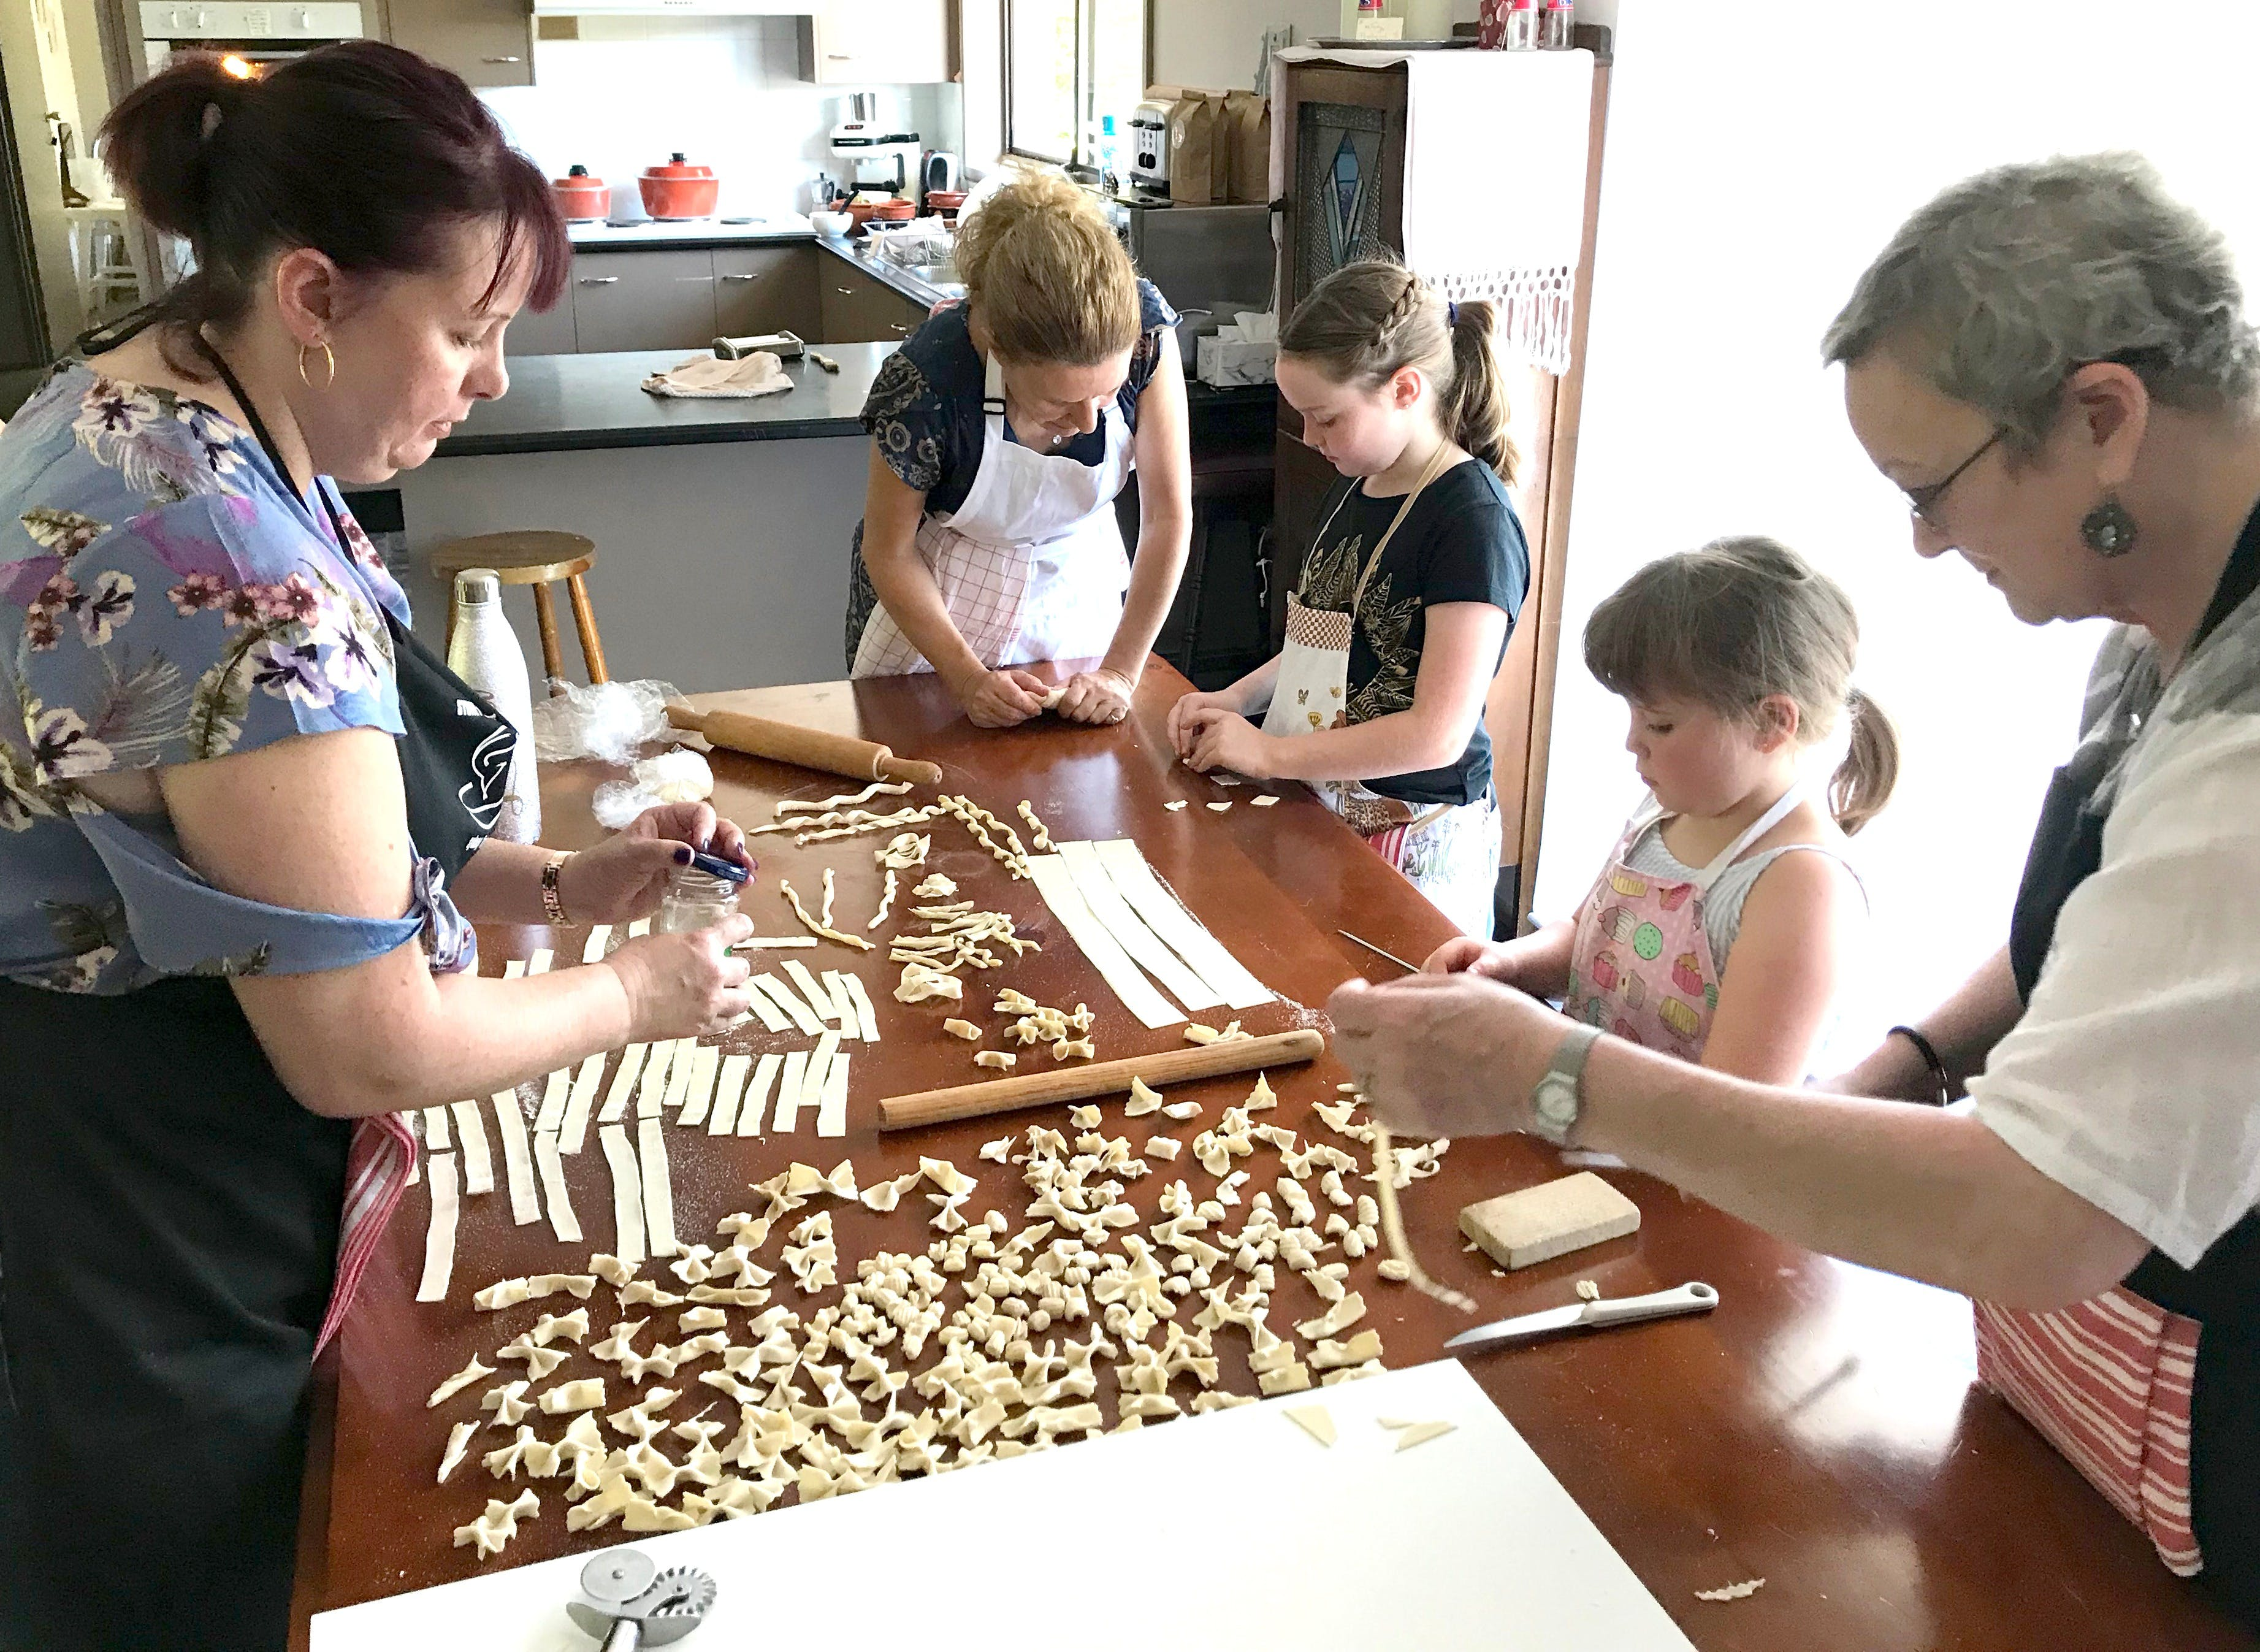 Kids Pasta Making Class - hands on fun at your house - Hotel Accommodation